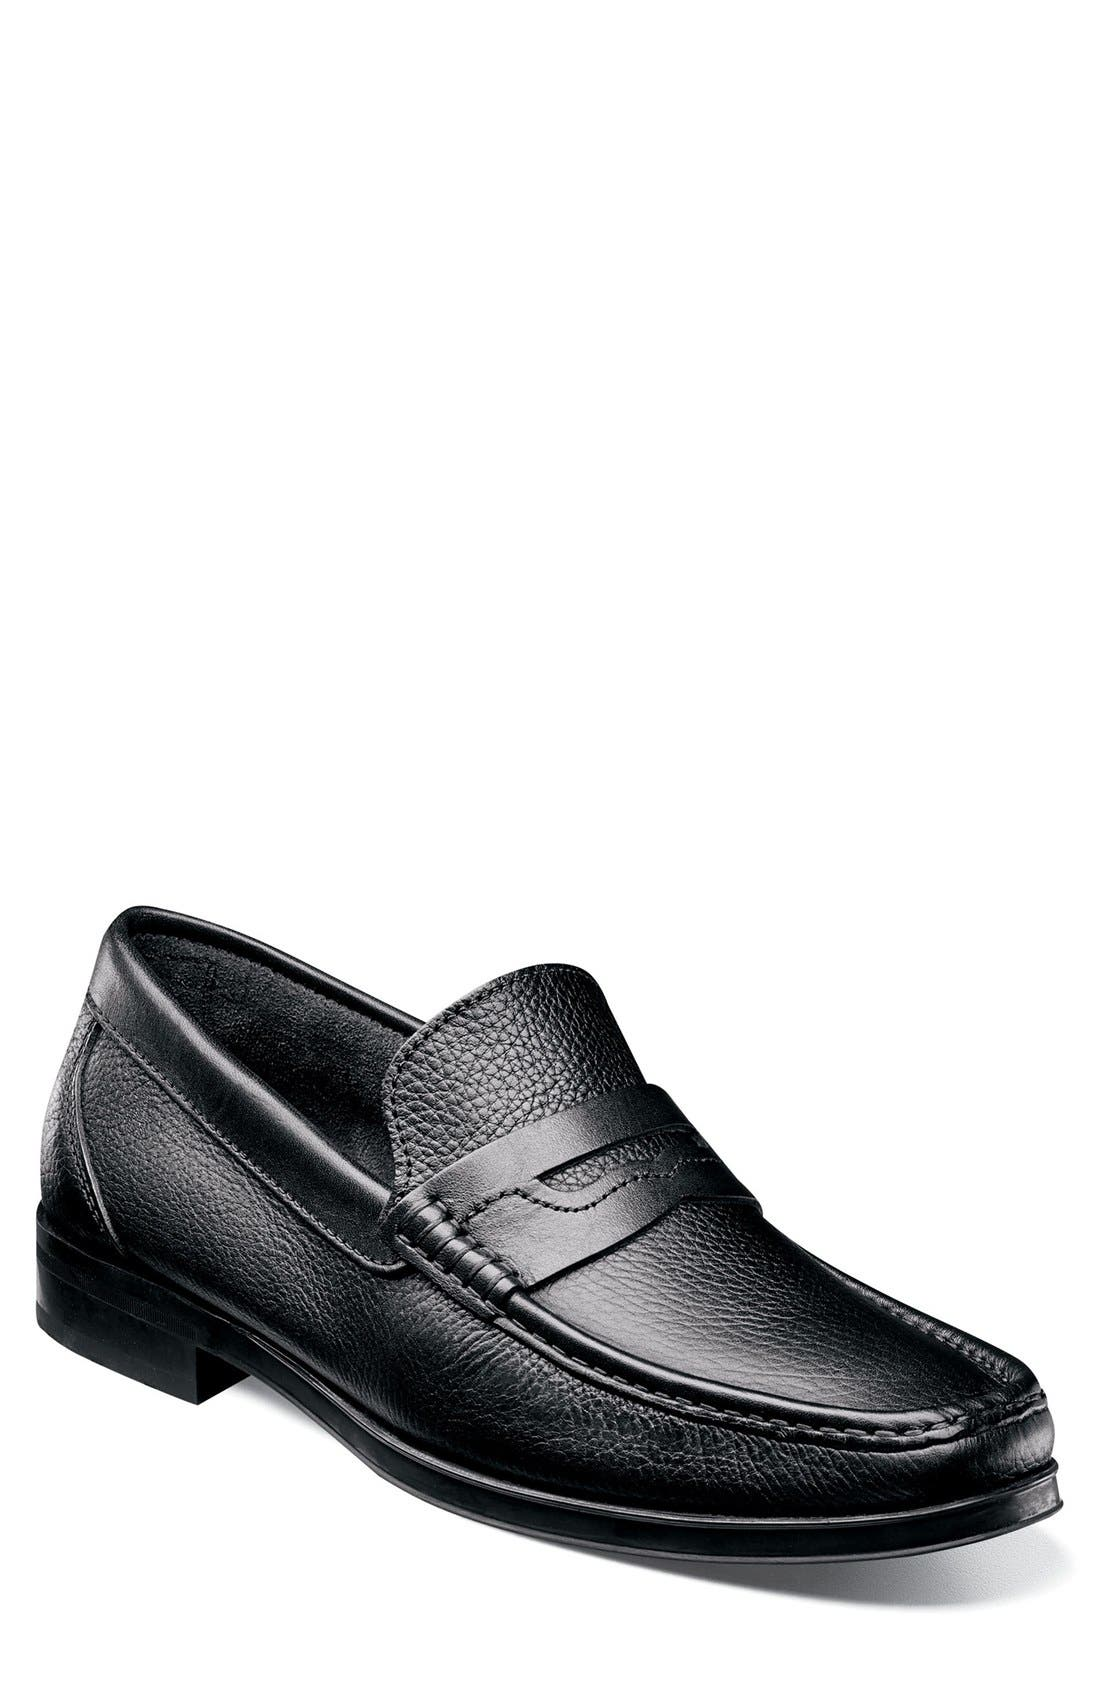 Alternate Image 1 Selected - Florsheim Westbrook Penny Loafer (Men)